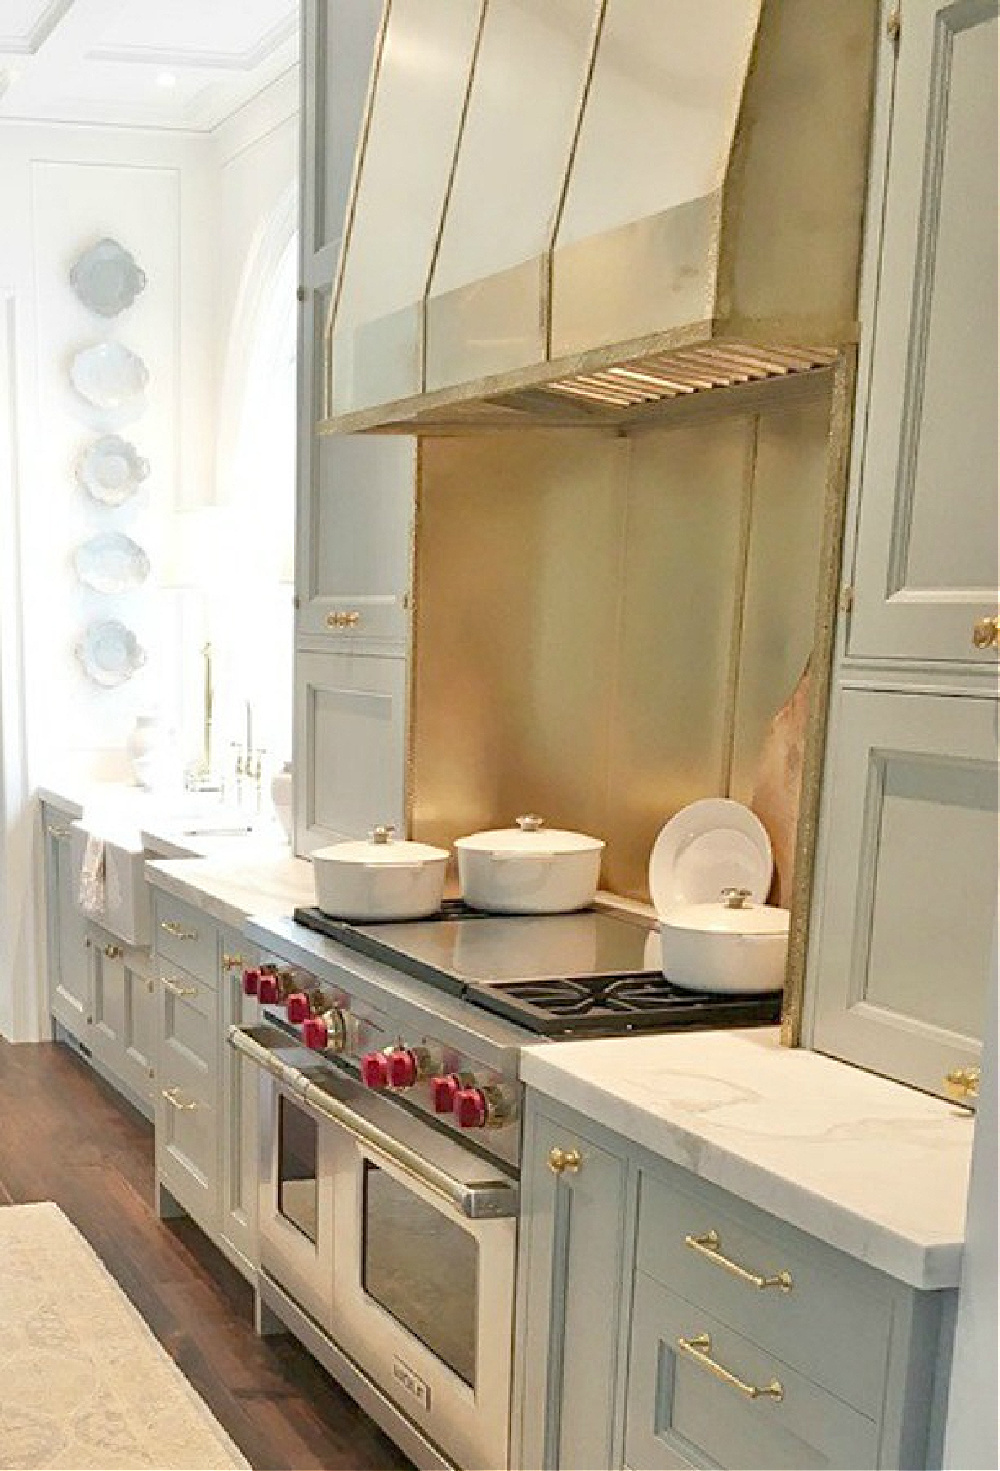 Farrow & Ball Light Blue painted cabinetry in a timeless traditional kitchen in the Southeastern Farrow & Ball Light Blue paint color on cabinets in kitchen. Southeastern Designer Showhouse 2017. #farrowandballlightblue #kitchendesign #bespoke #lightbluepaint #brasshardware